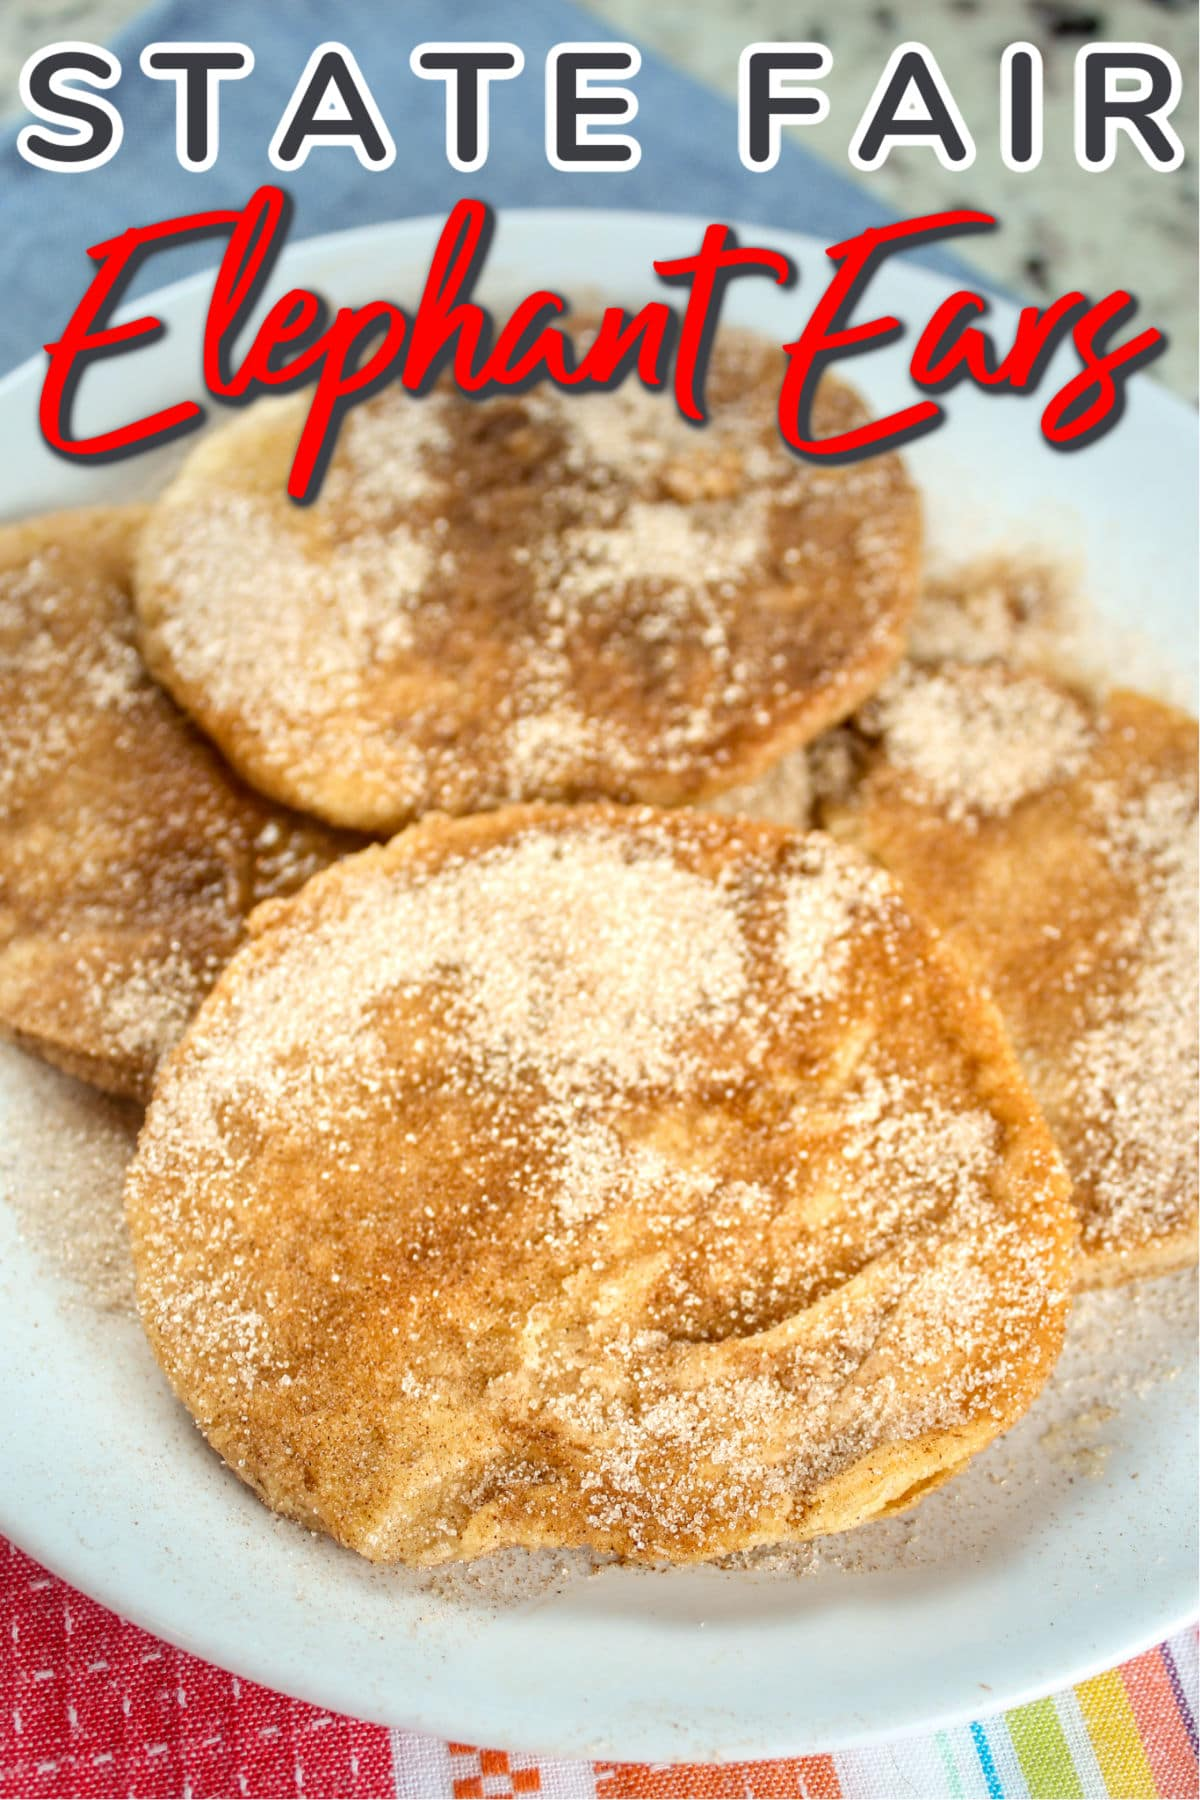 We're all missing the State Fair this year - but you can still make your own Copycat Elephant Ears with just a few ingredients! via @foodhussy